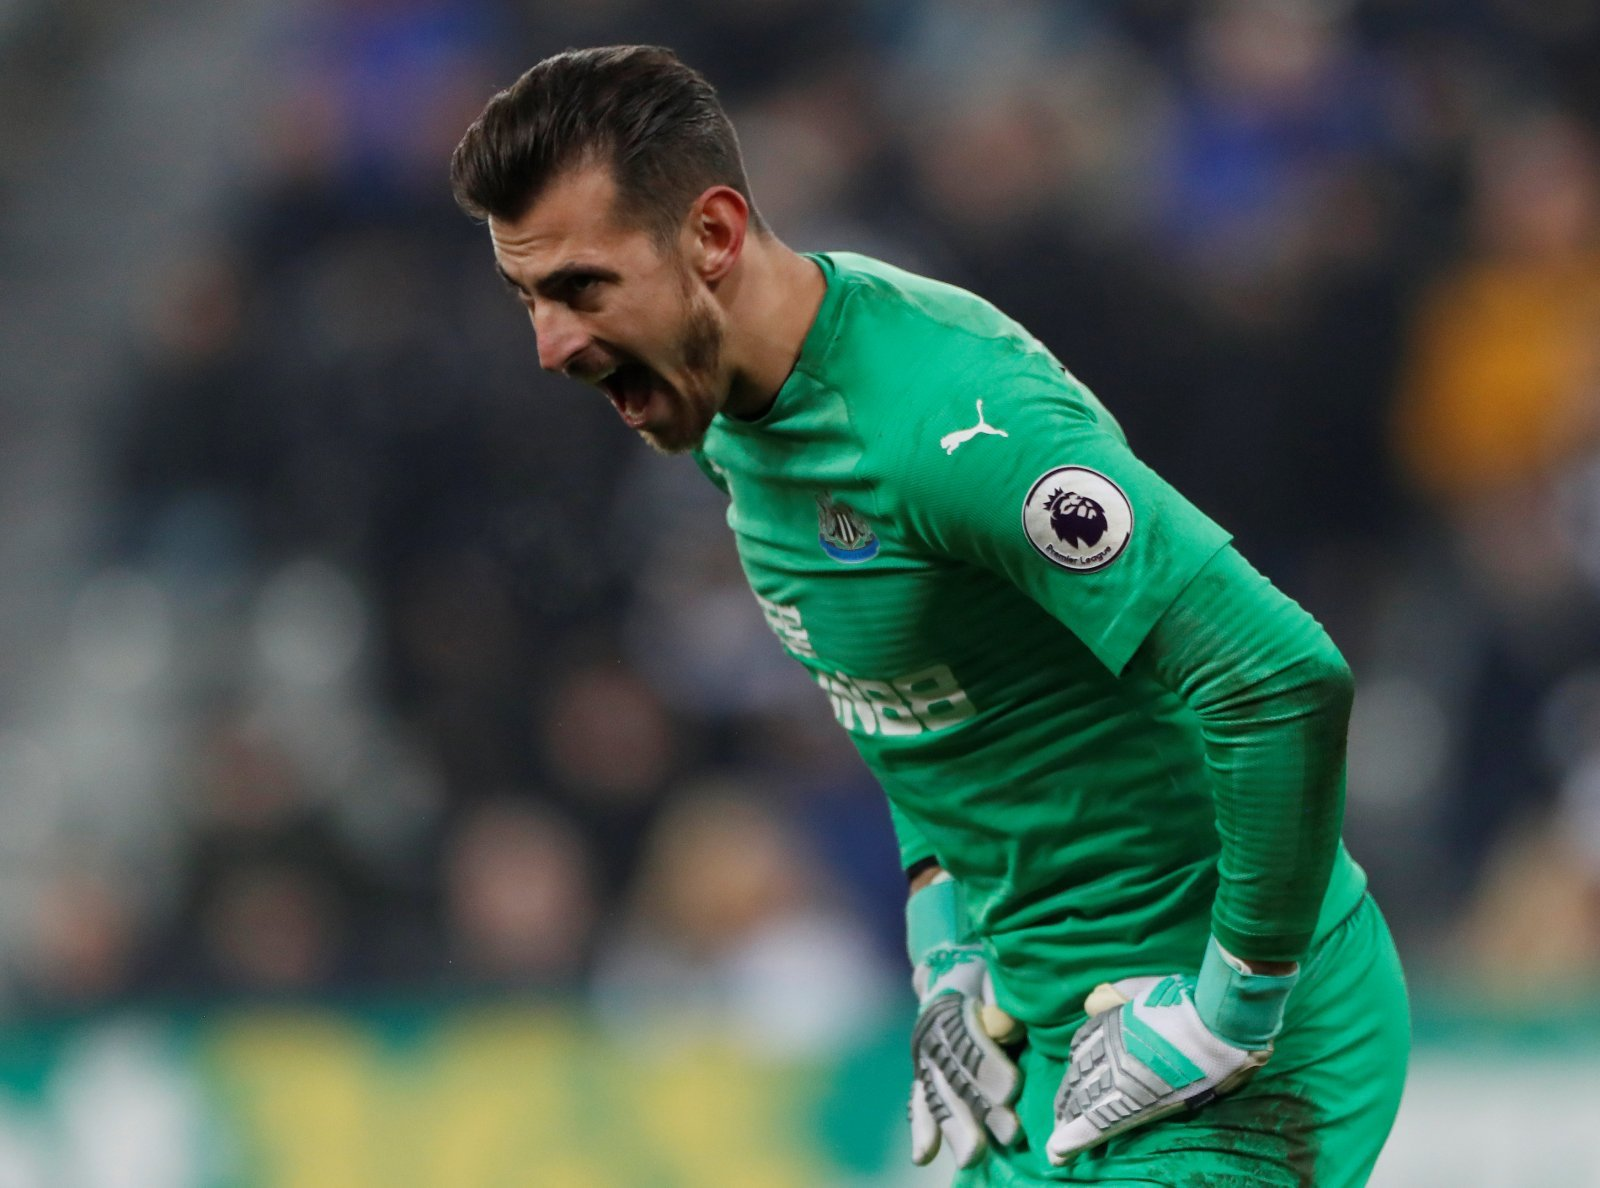 Newcastle fans take to Twitter to stand behind Martin Dubravka